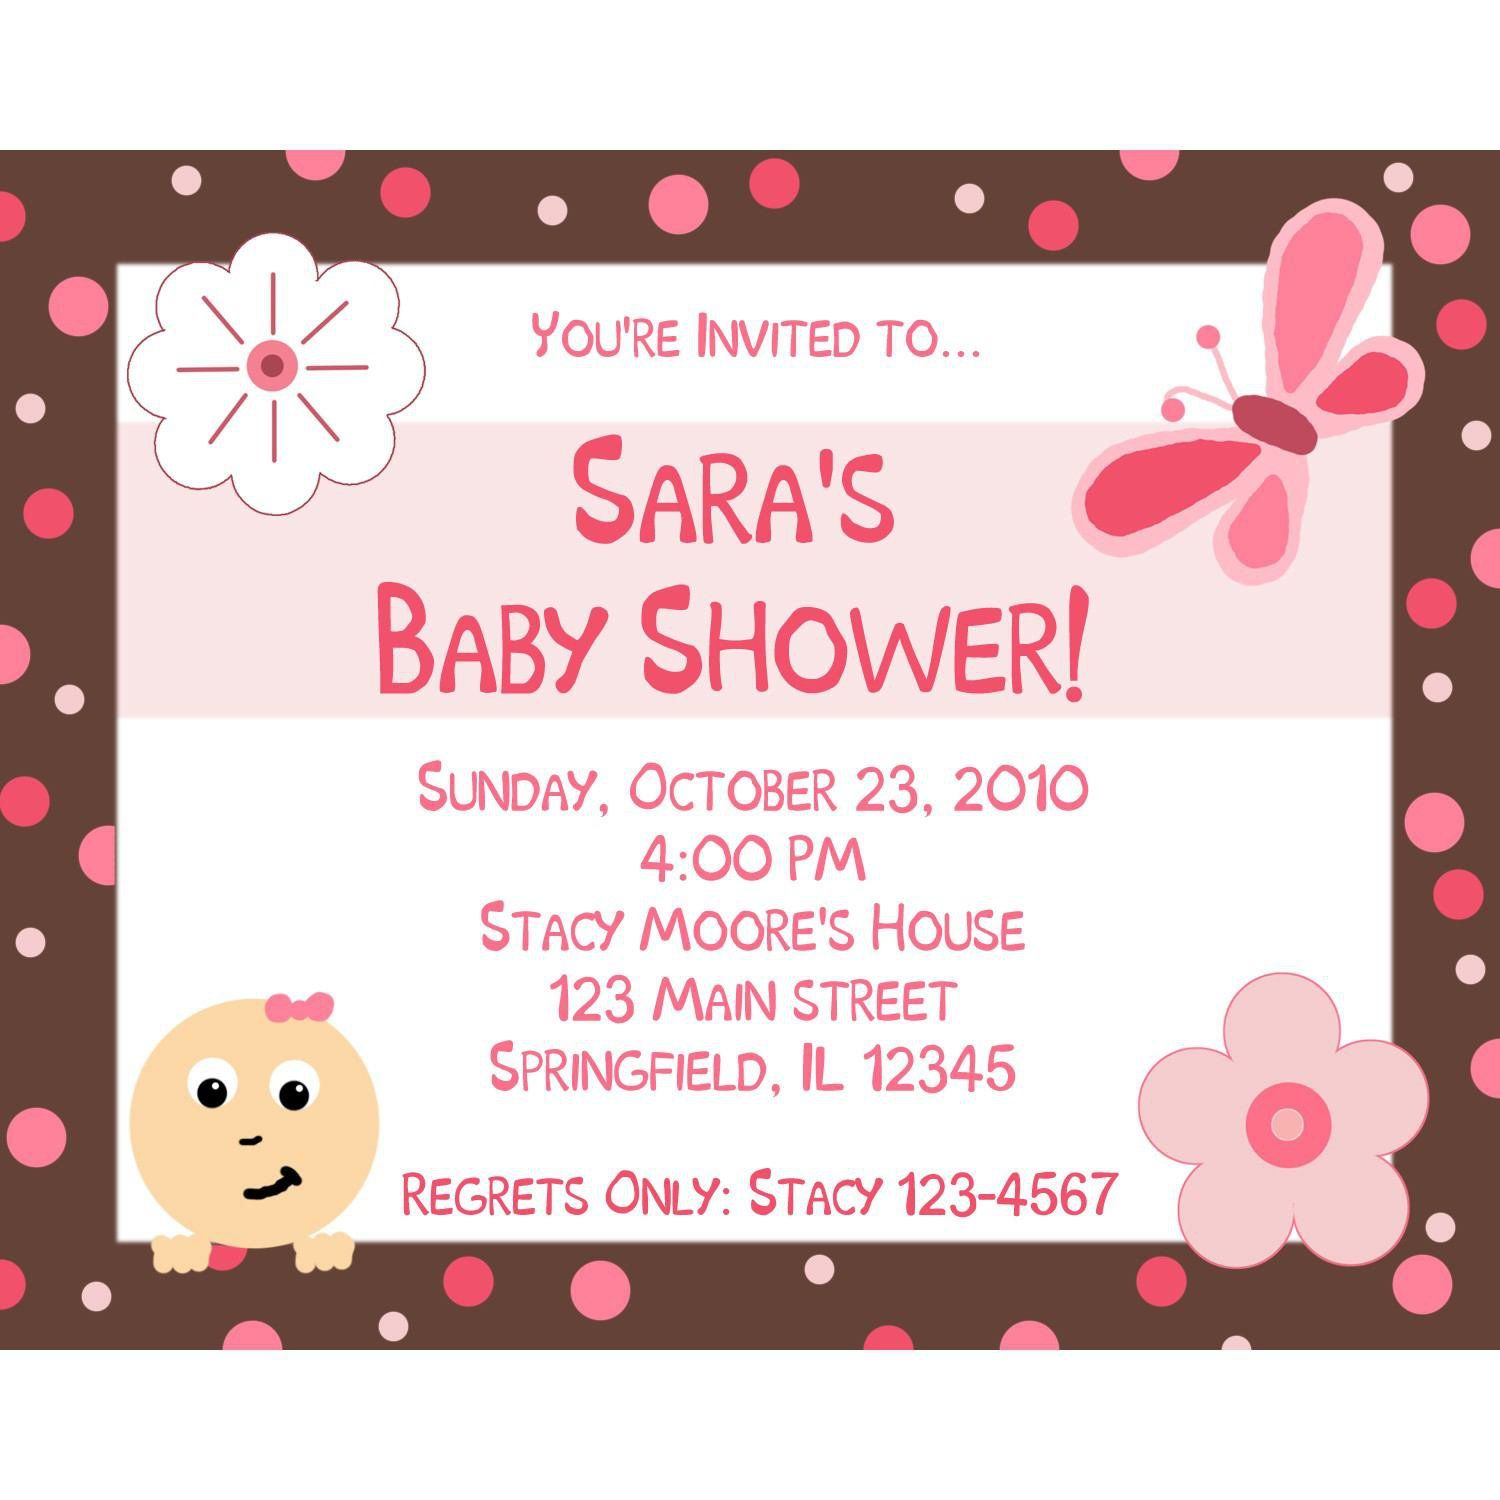 Birthday Invitation Maker Online Free Printable Party Invitations - Make Printable Party Invitations Online Free